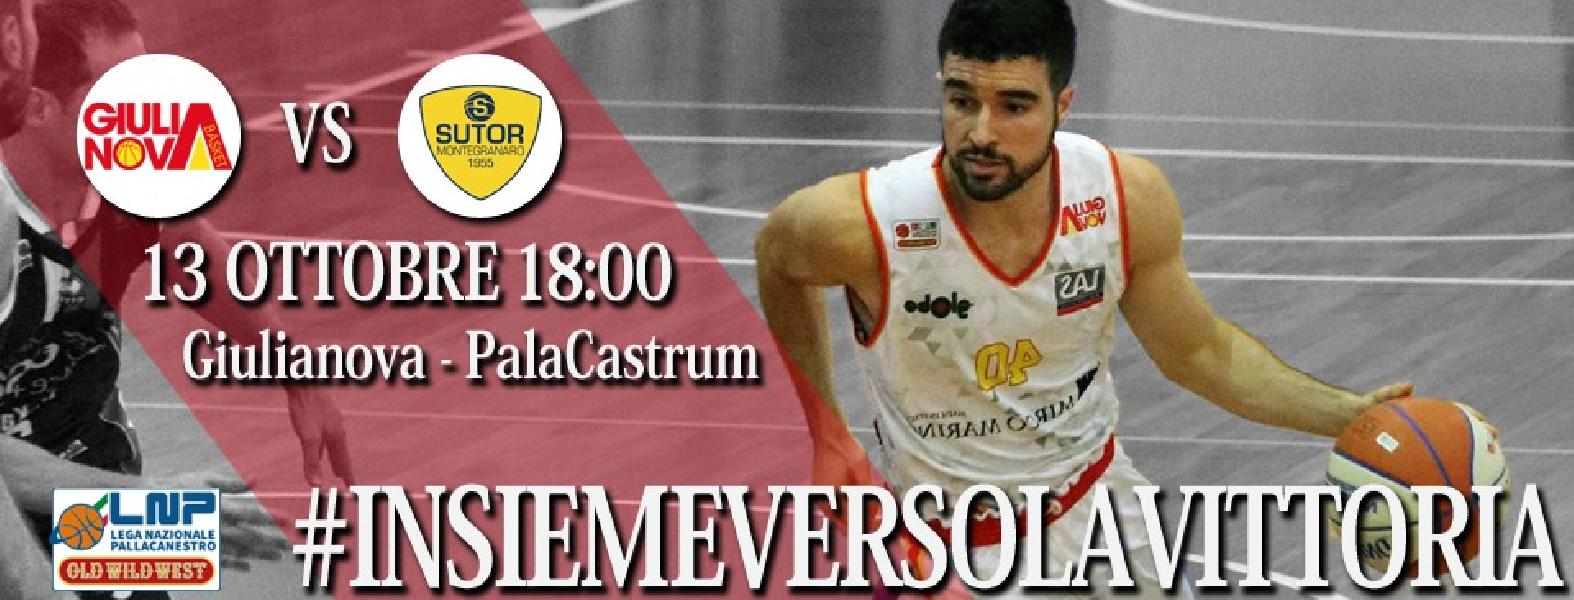 https://www.basketmarche.it/immagini_articoli/12-10-2019/giulianova-basket-ospita-sutor-montegranaro-palio-punti-importanti-classifica-600.jpg